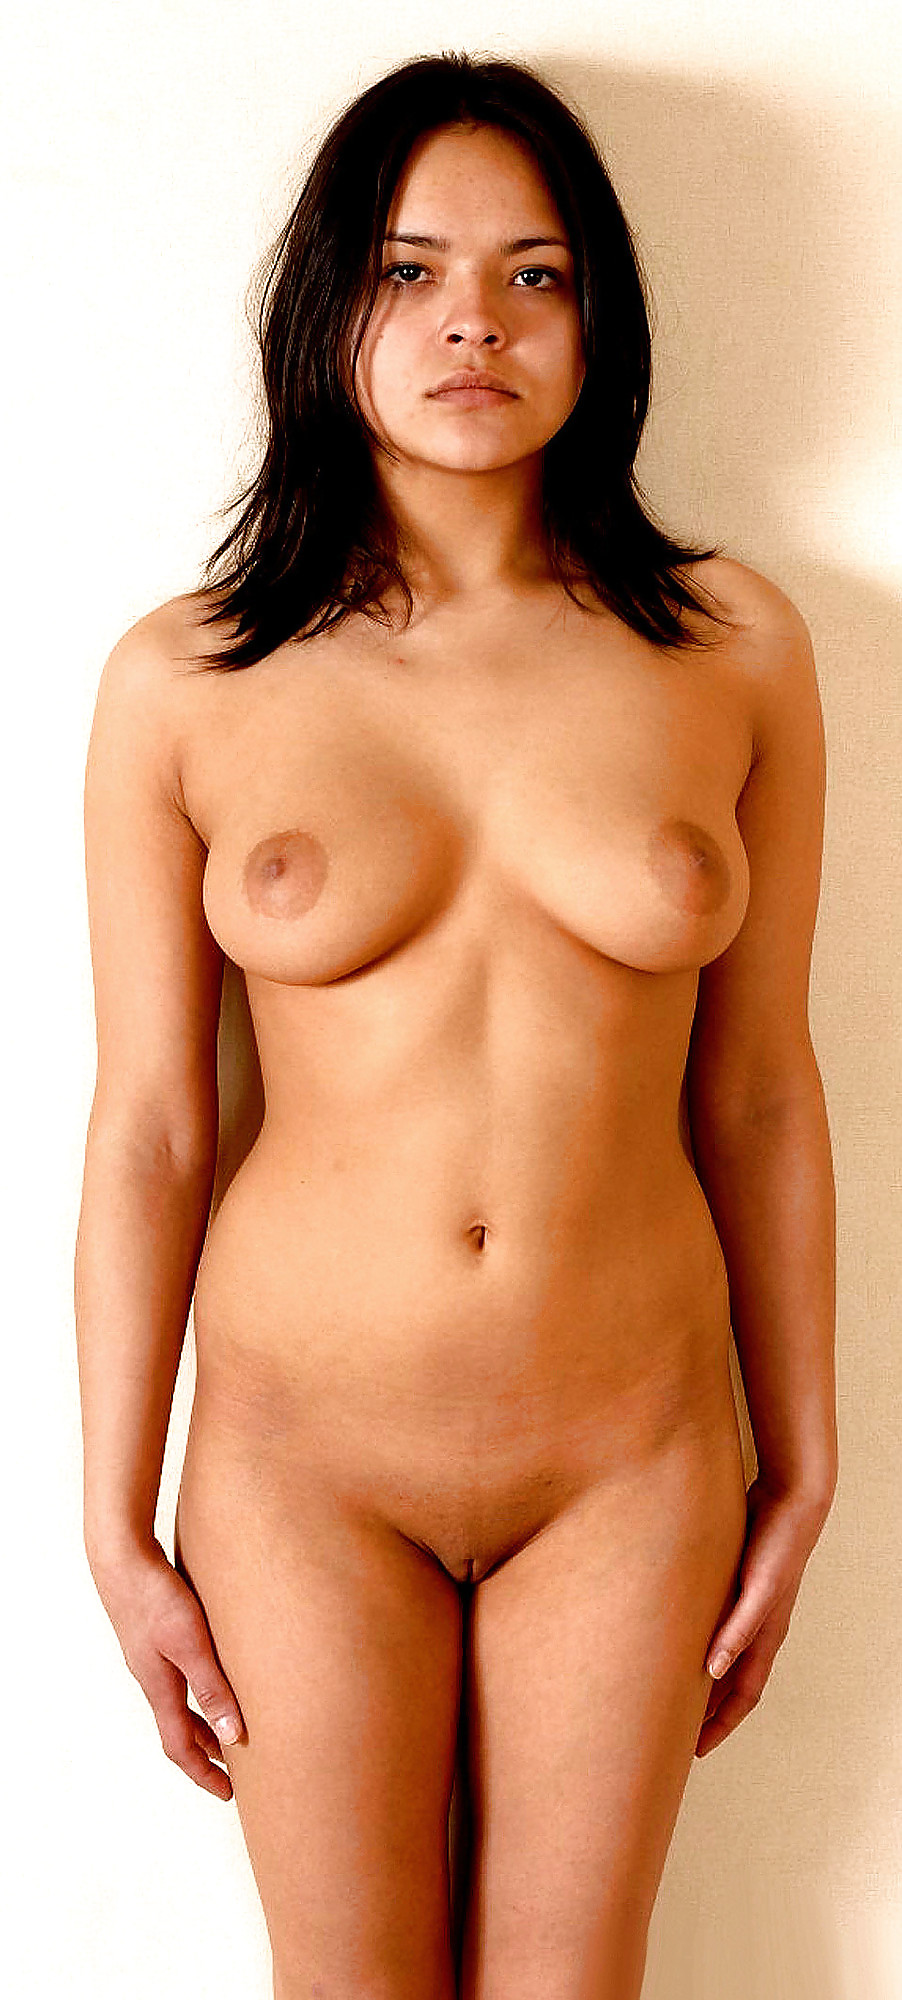 Full frontal nudity amateurs